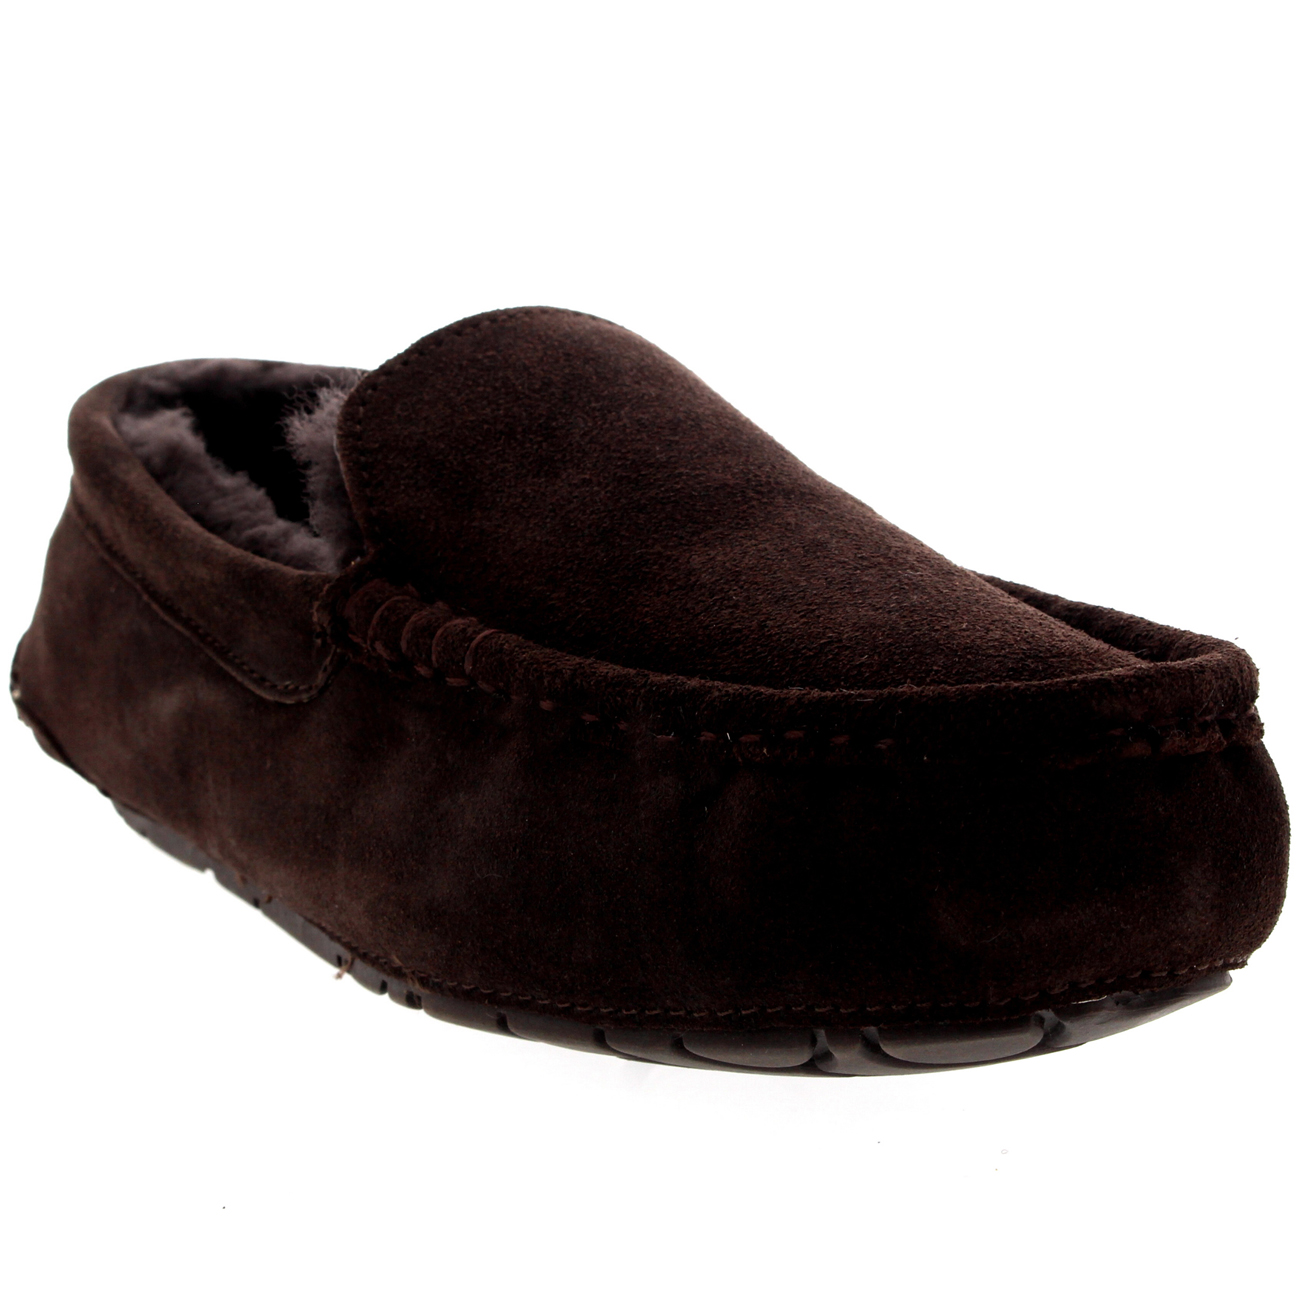 0ce88650069 Mens Ugg Moccasin Slippers - cheap watches mgc-gas.com